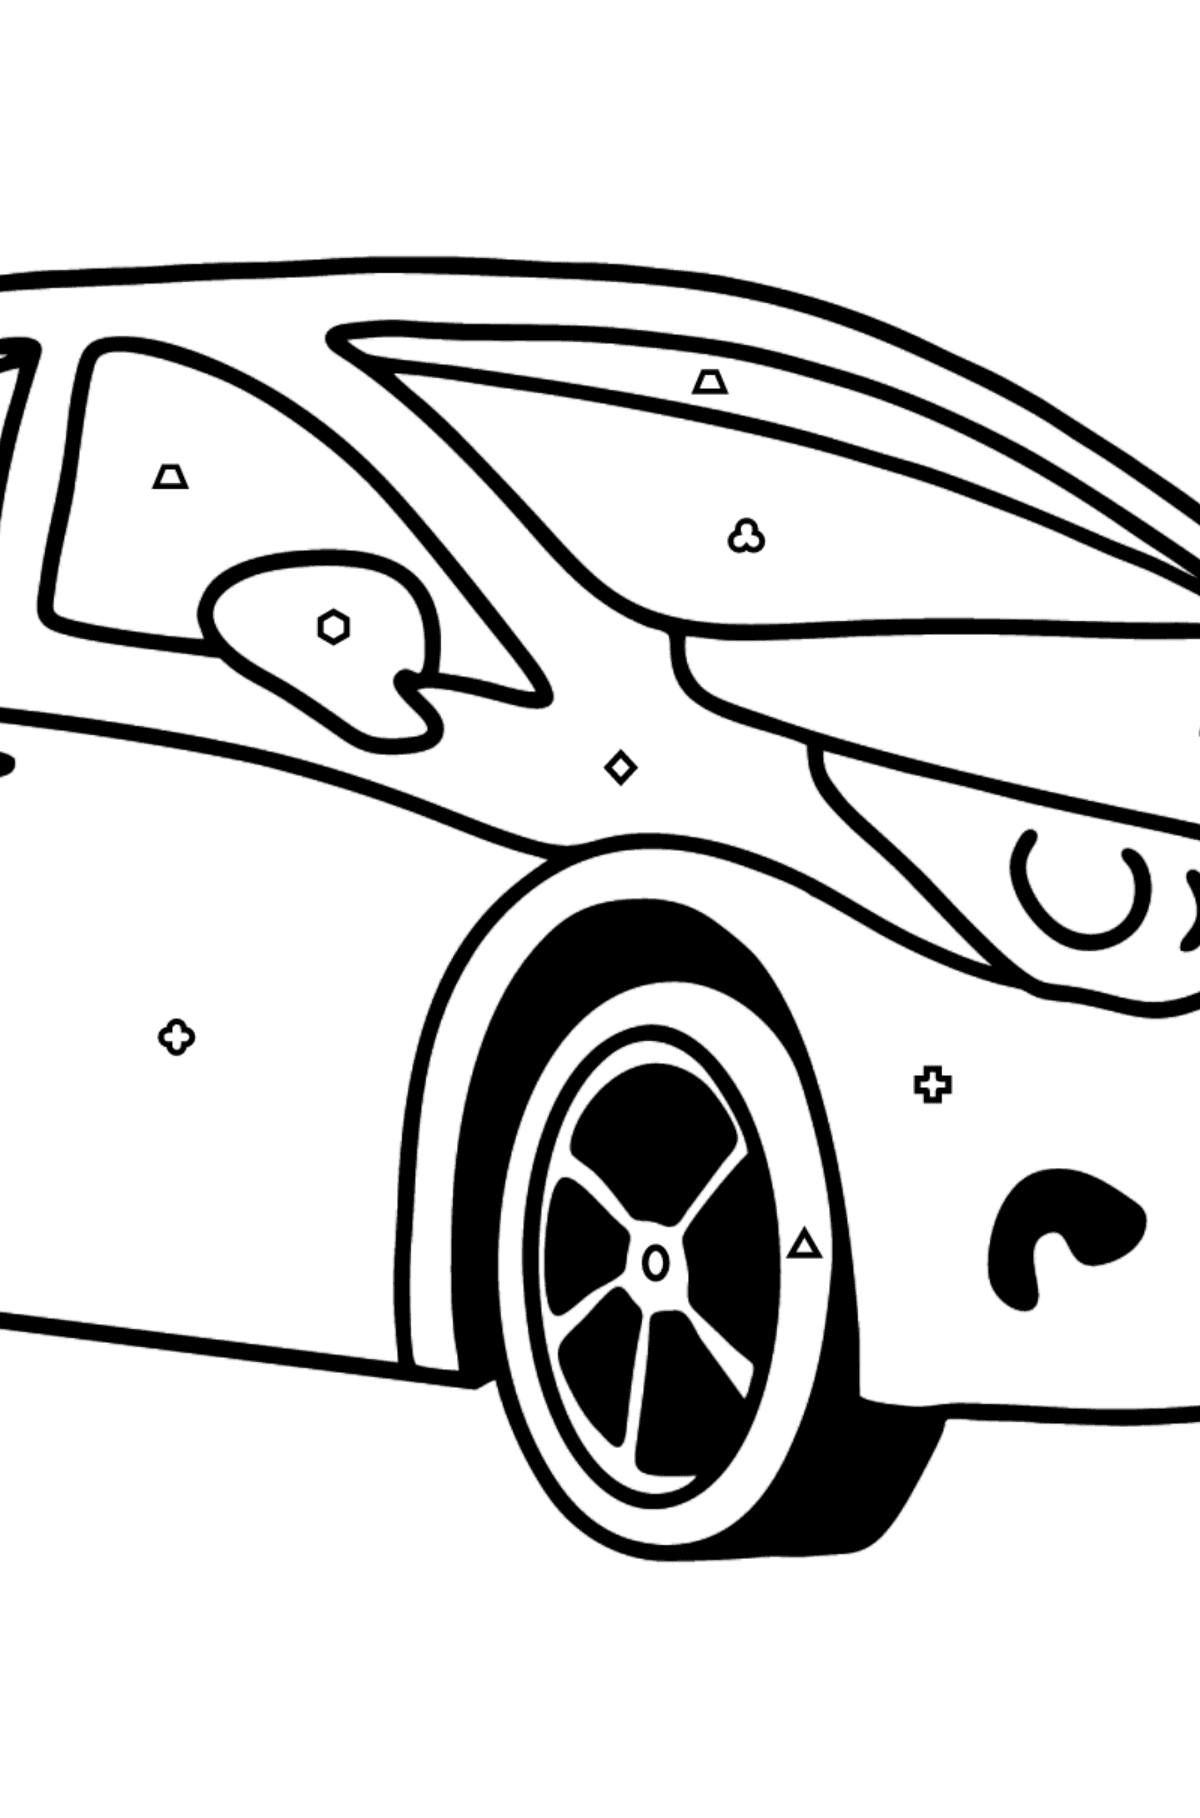 Toyota Avensis Car coloring page - Coloring by Geometric Shapes for Kids